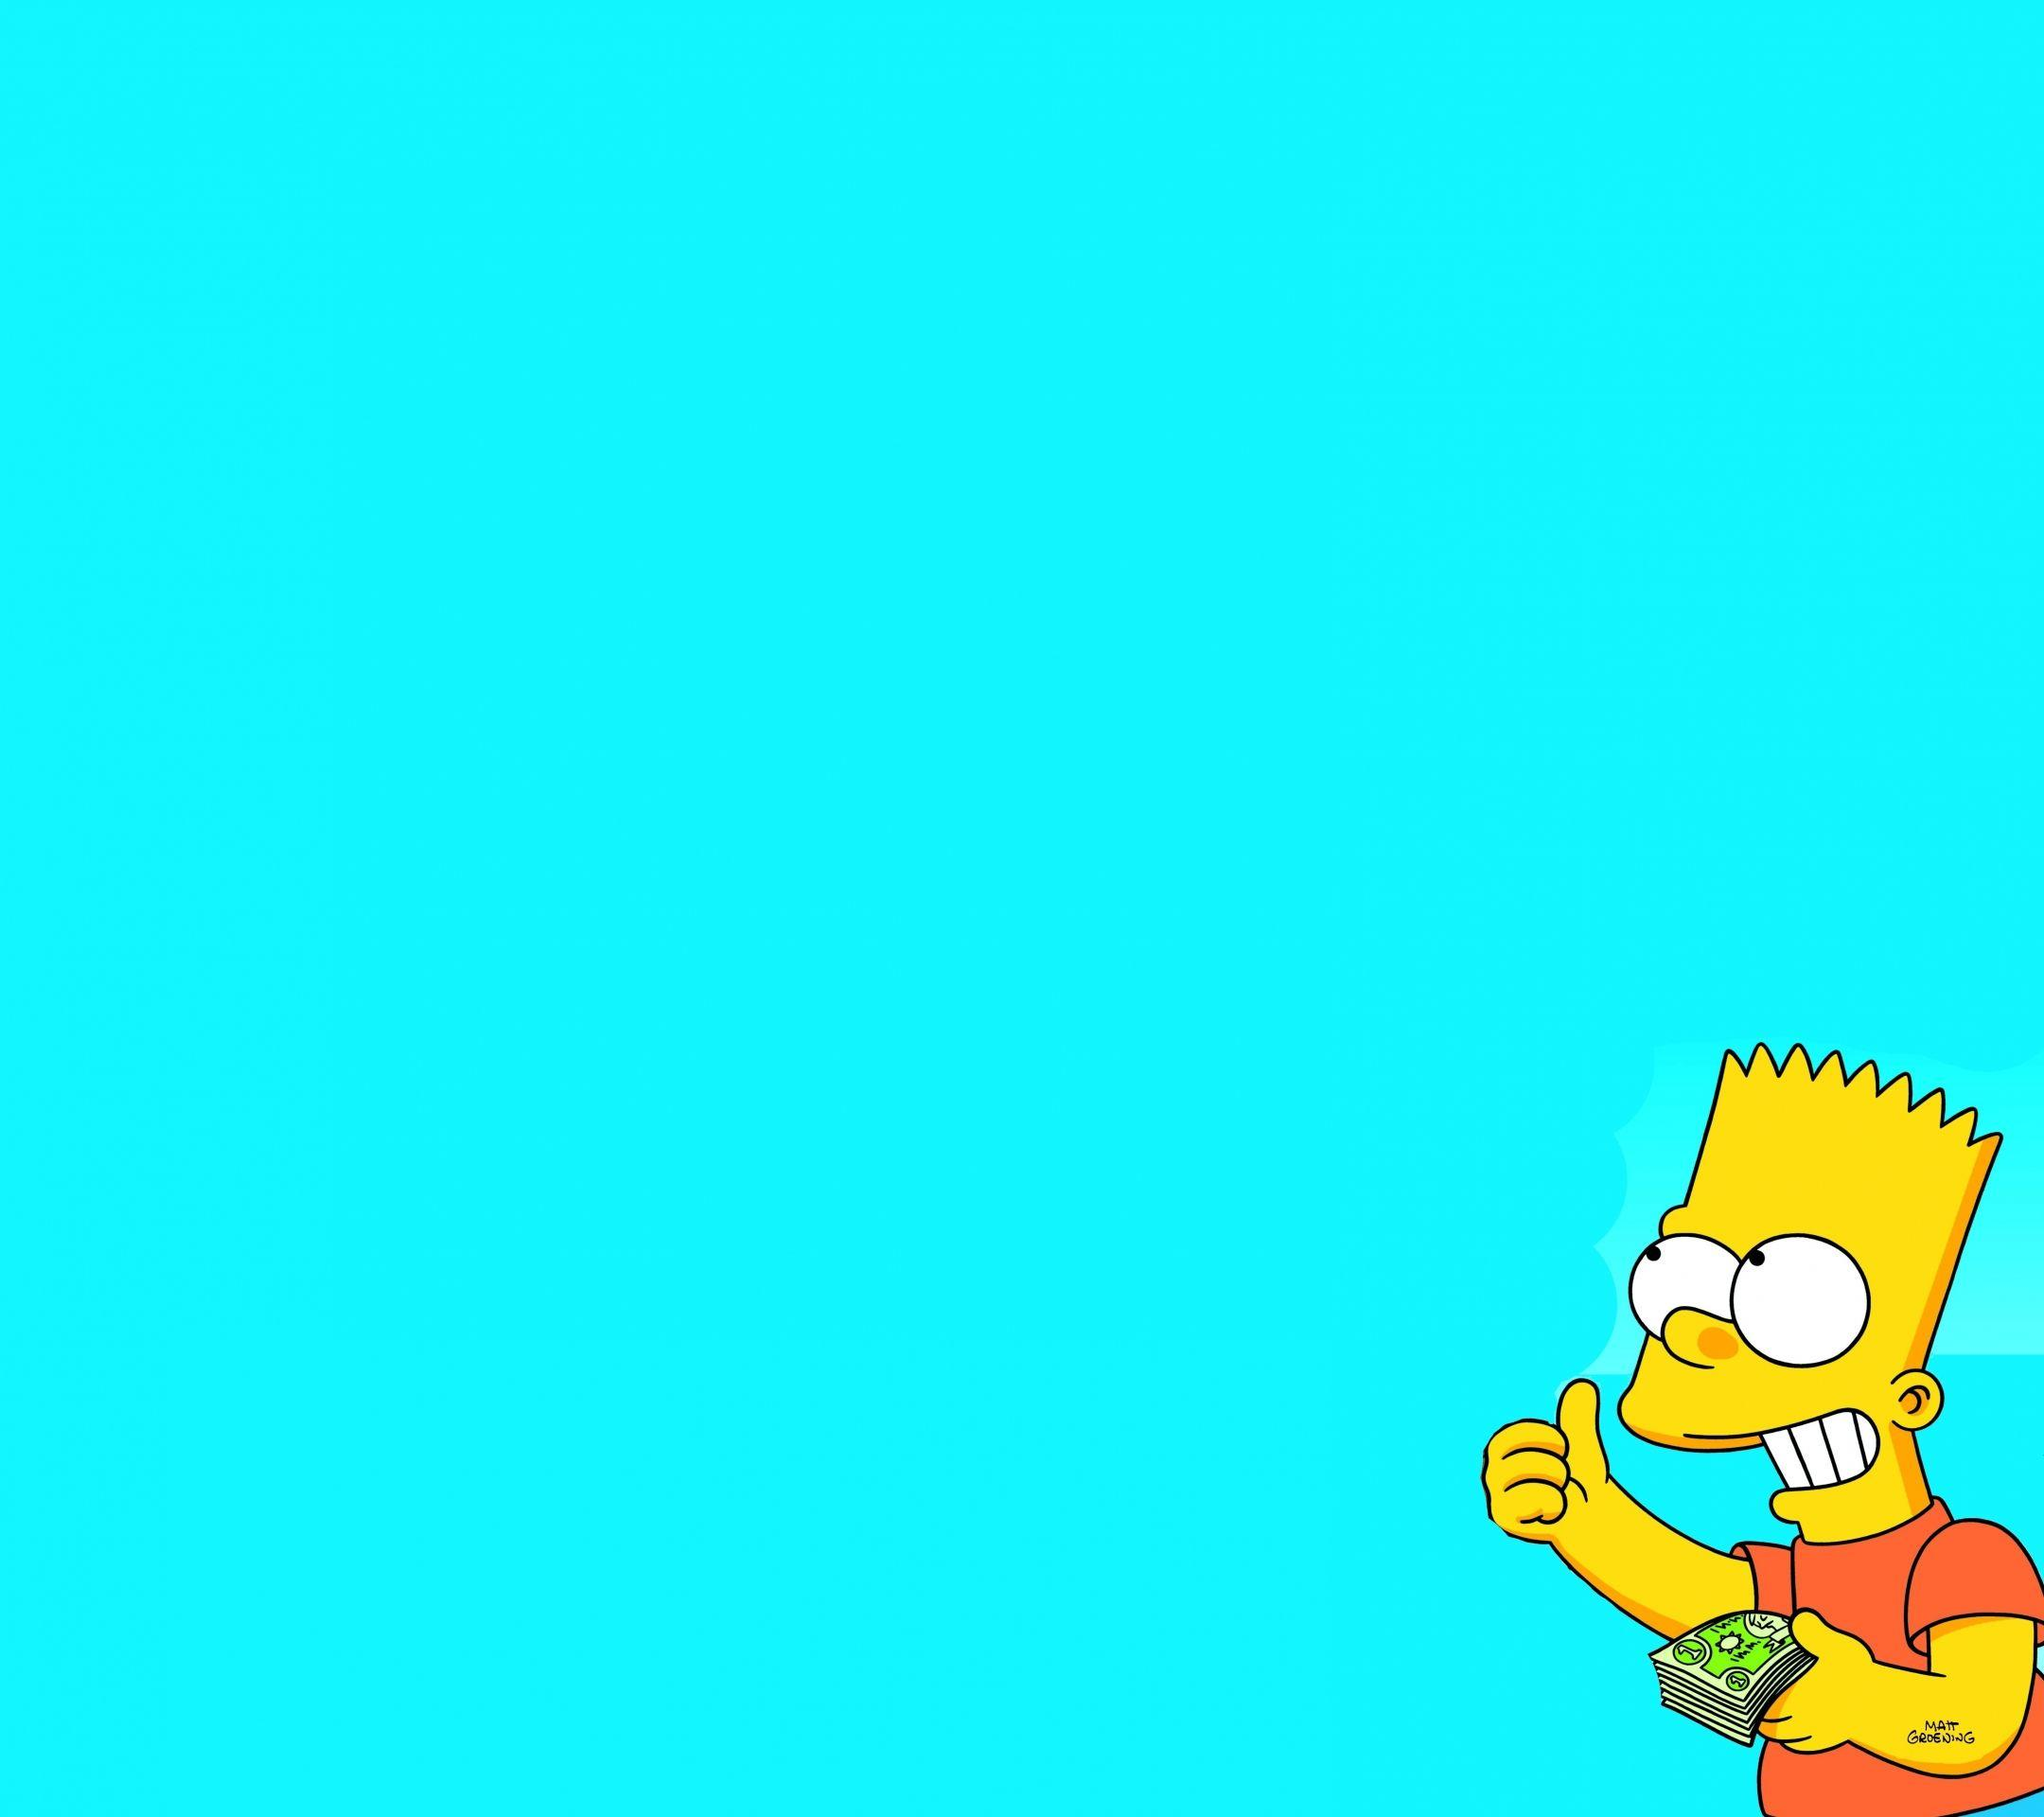 Galaxy J2 - TV Show/The Simpsons - Wallpaper ID: 162696